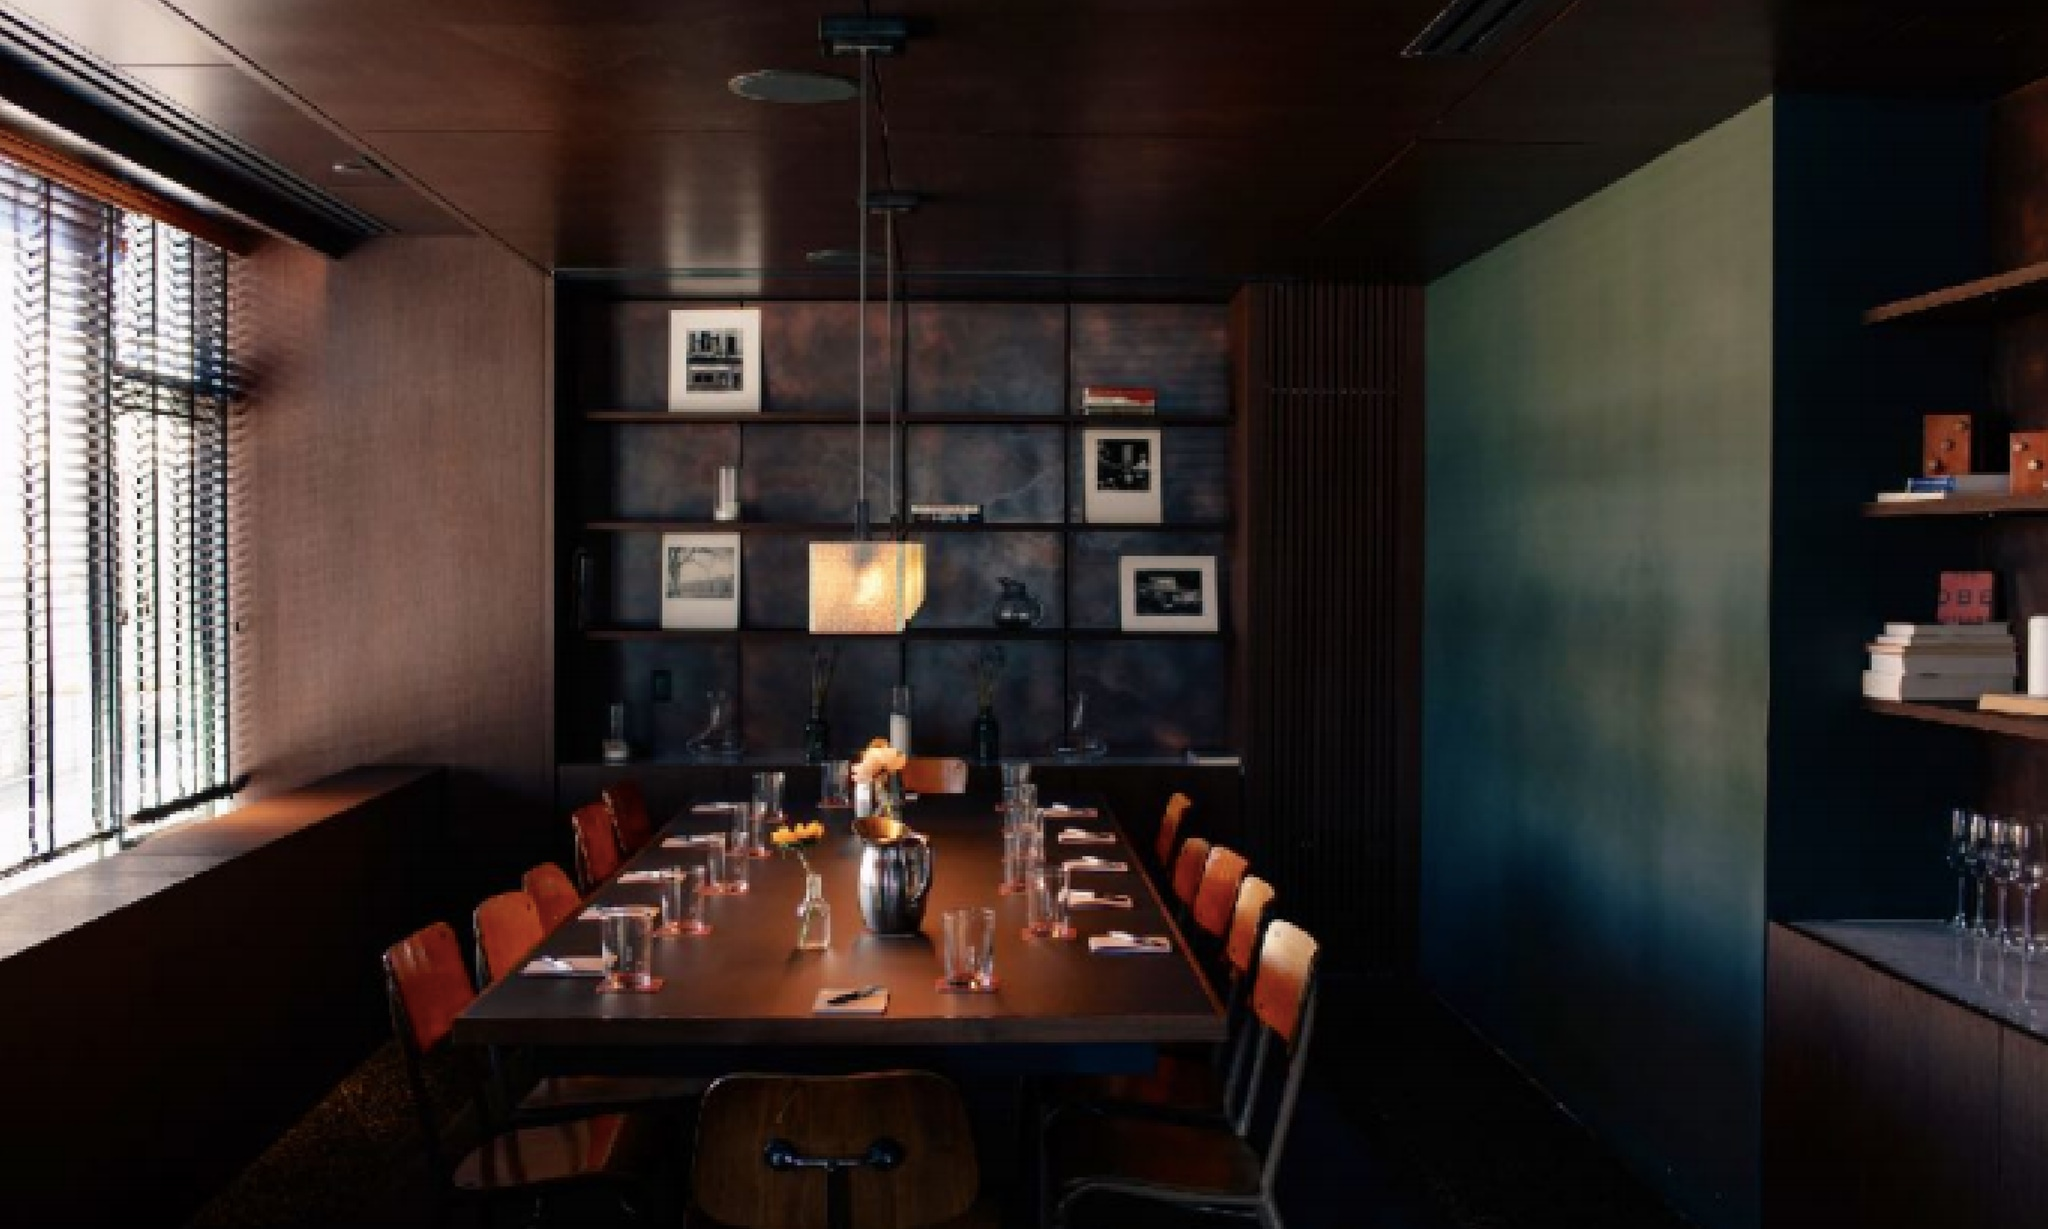 a naturally lit room with a dark stained wooden table, surrounded by earth toned decor